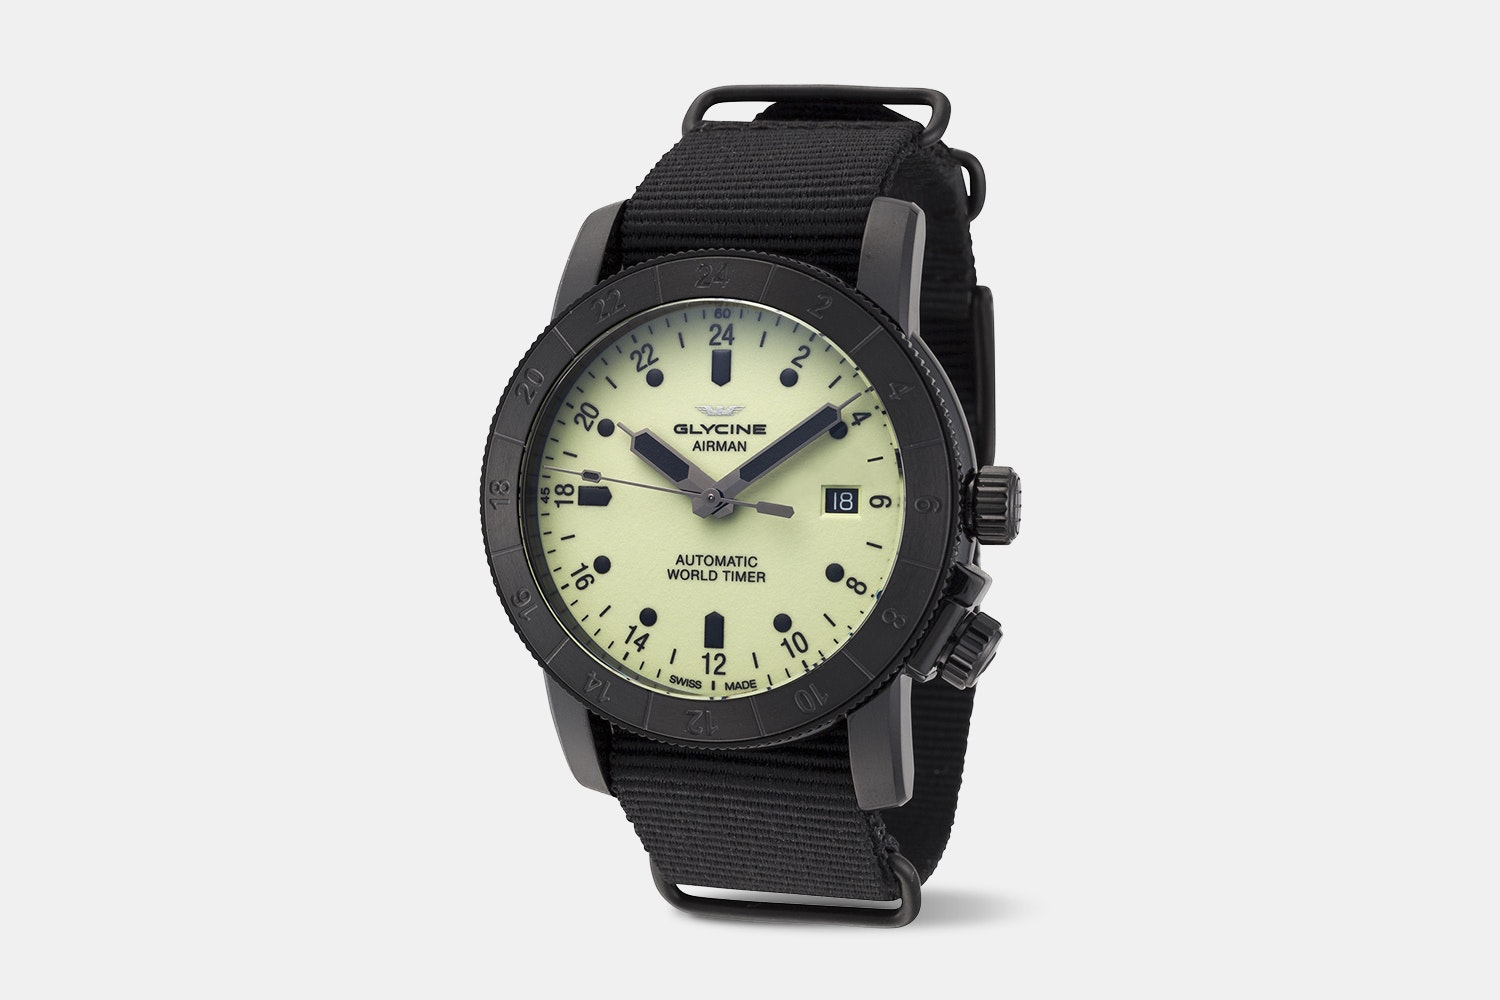 Airman 42 - GL0142 | Black Case, Luminous Dial, Black Fabric Strap